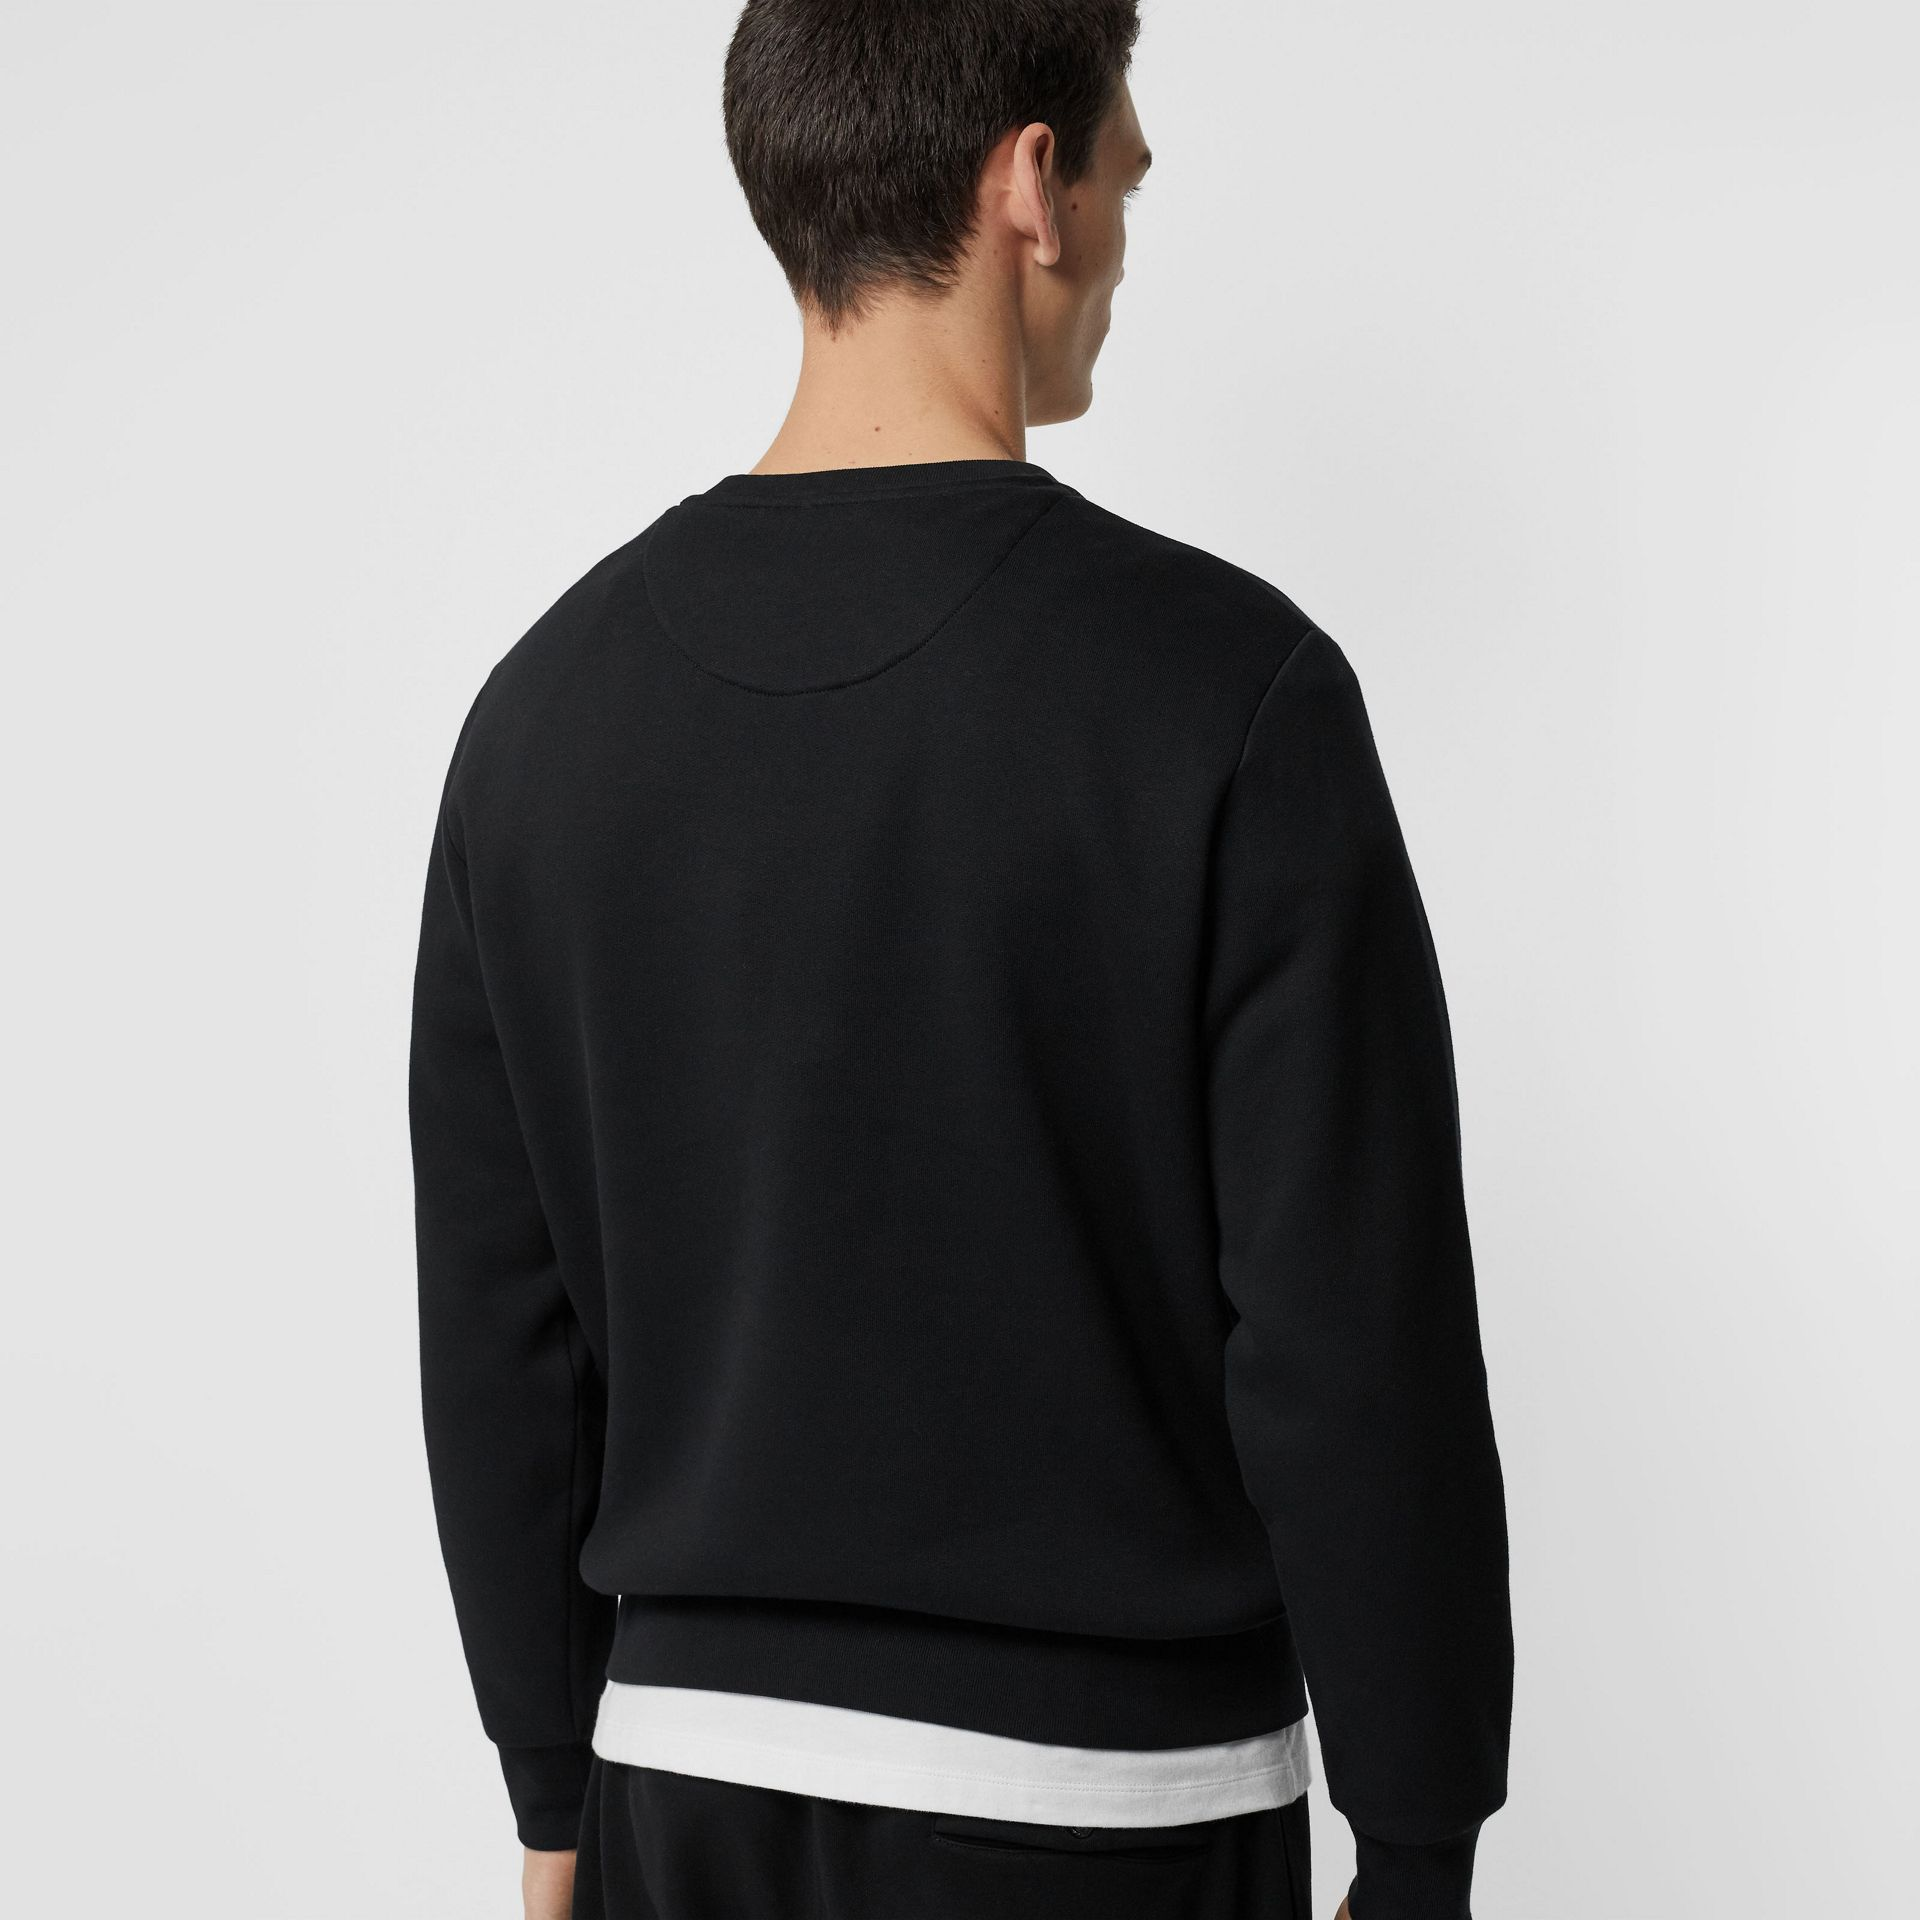 Bullion Floral Cotton Blend Sweatshirt in Black - Men | Burberry Australia - gallery image 2